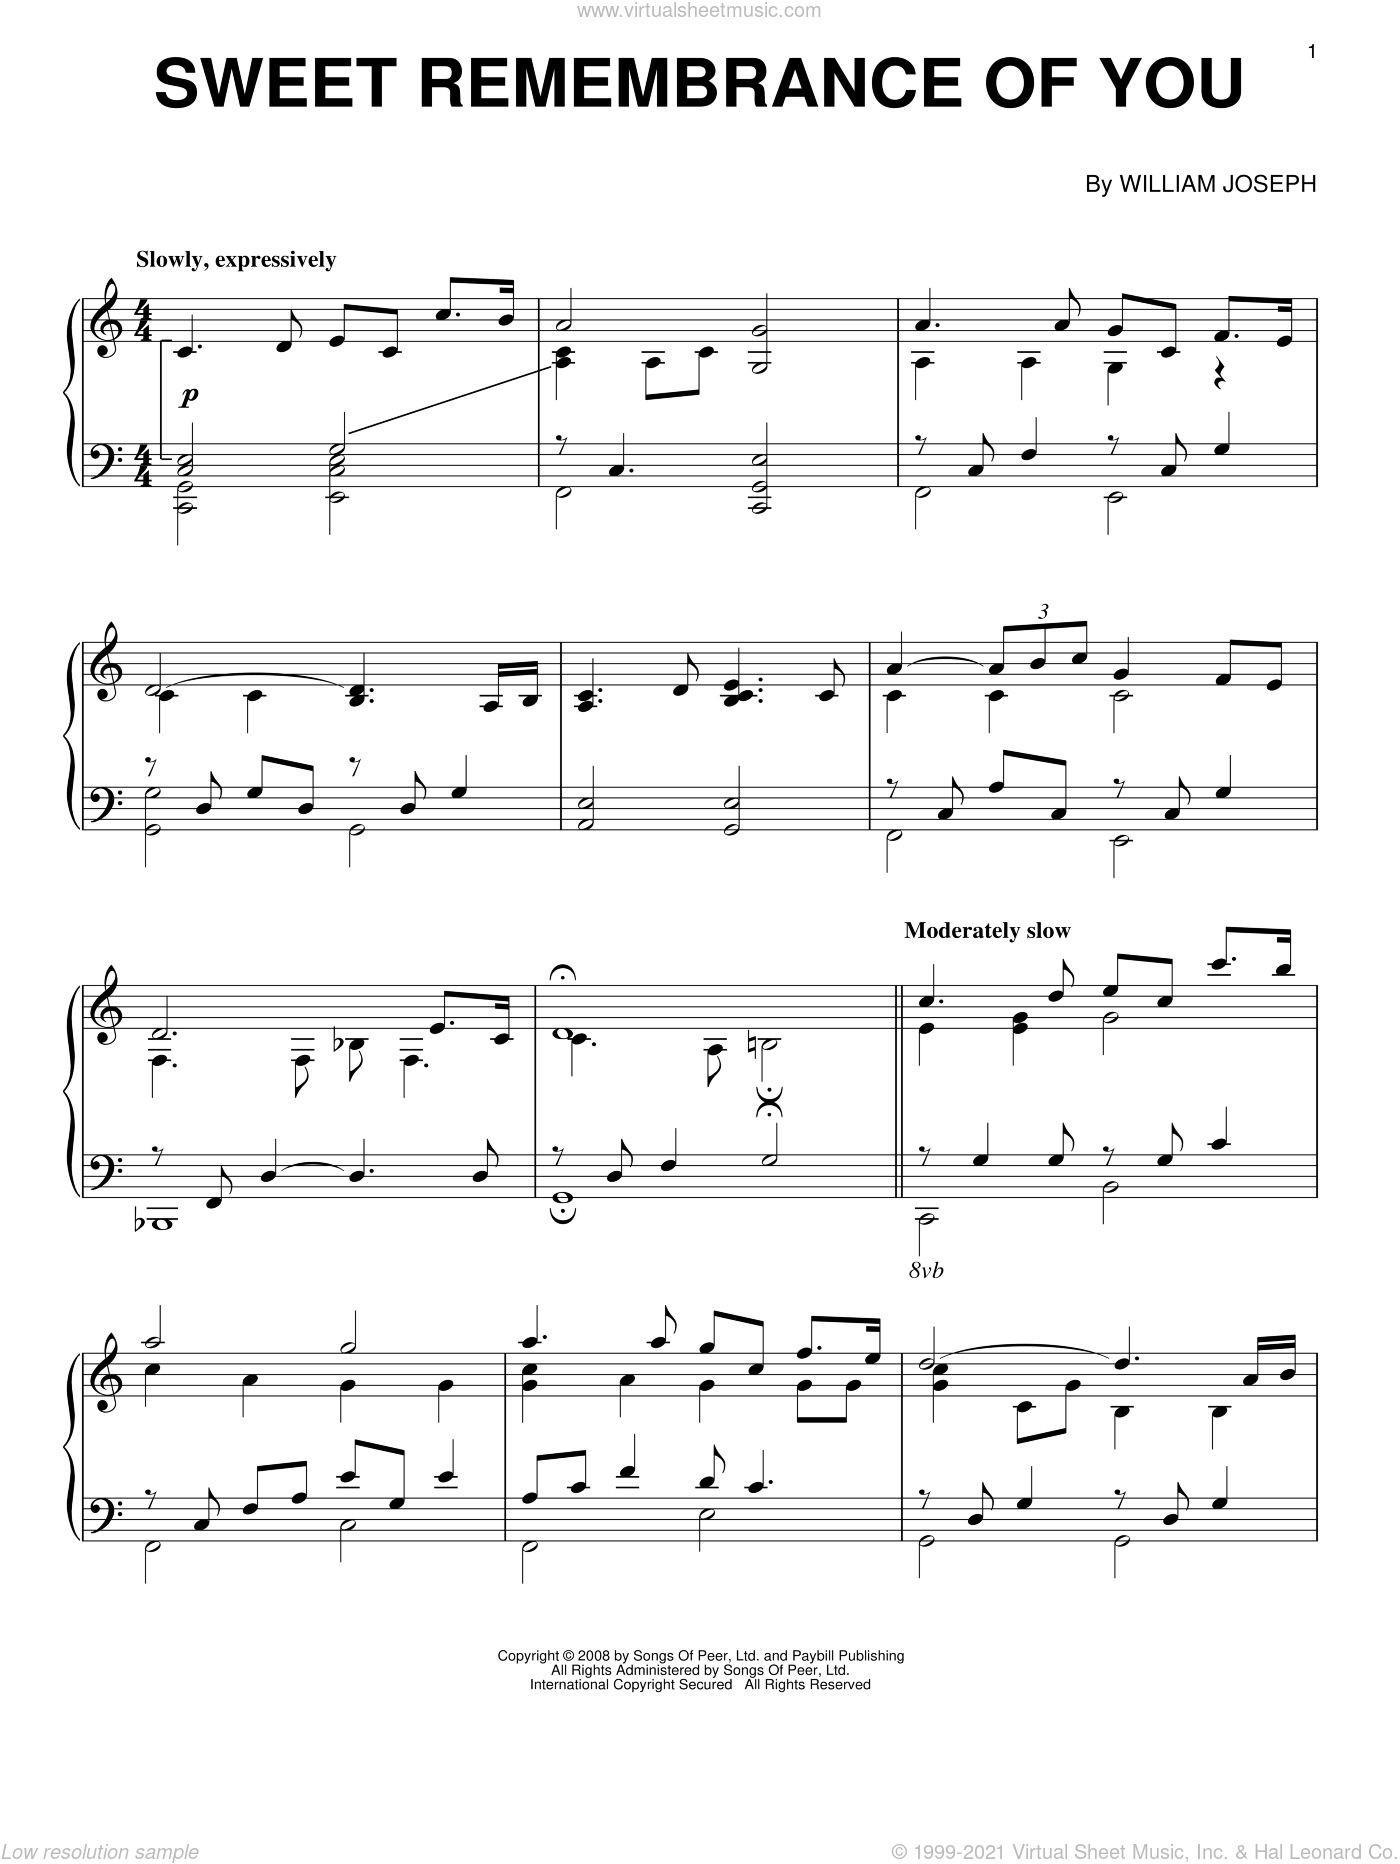 Sweet Remembrance Of You sheet music for piano solo by William Joseph, intermediate skill level